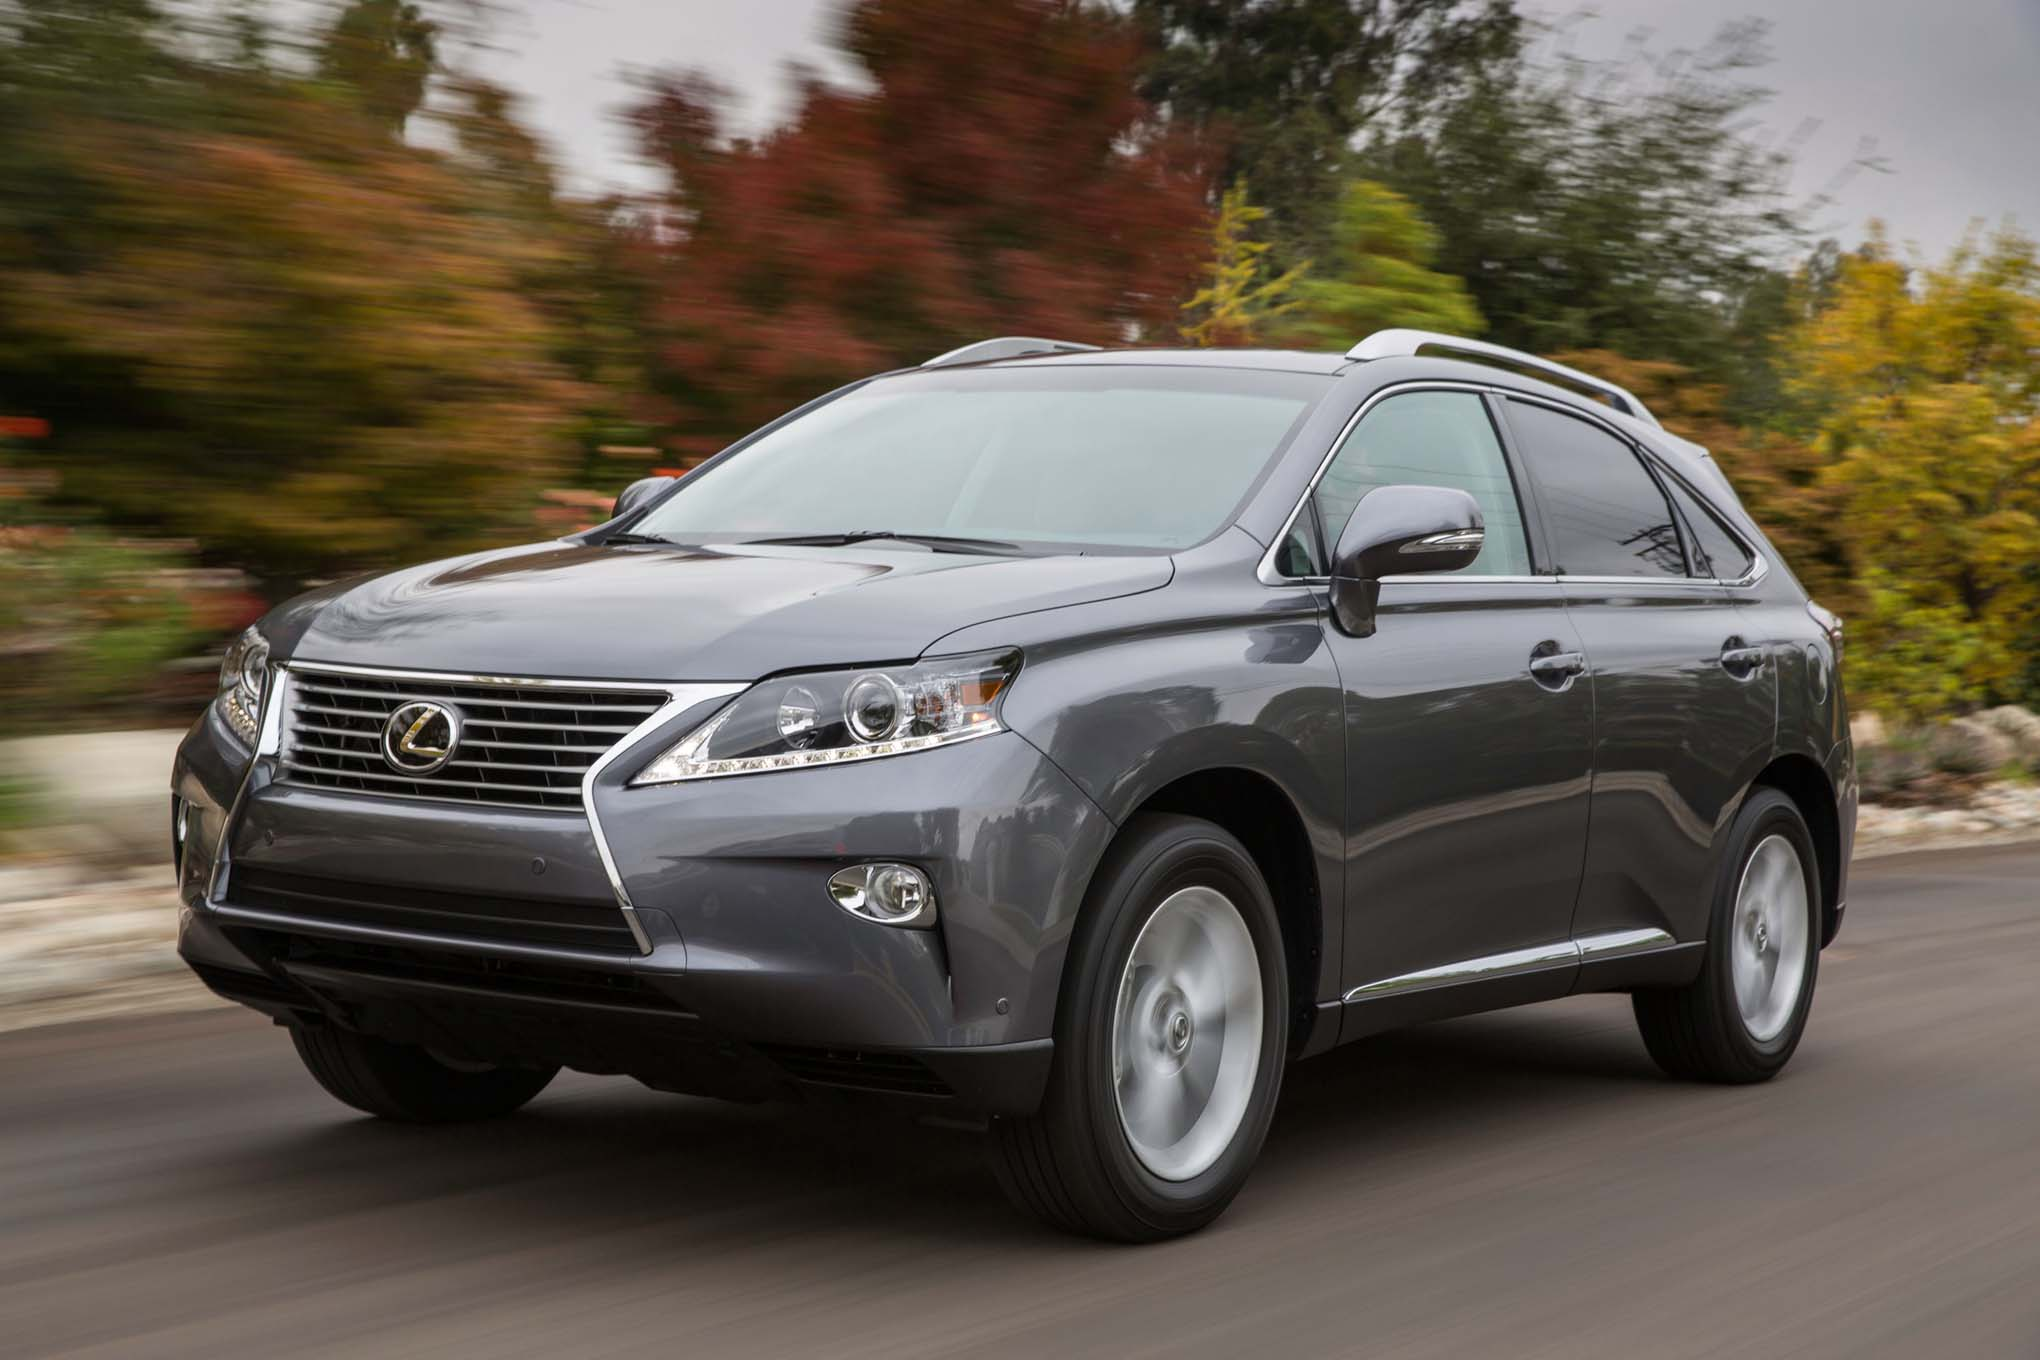 http://st.automobilemag.com/uploads/sites/10/2015/09/2015-Lexus-RX-350-front-three-quarter-in-motion.jpg